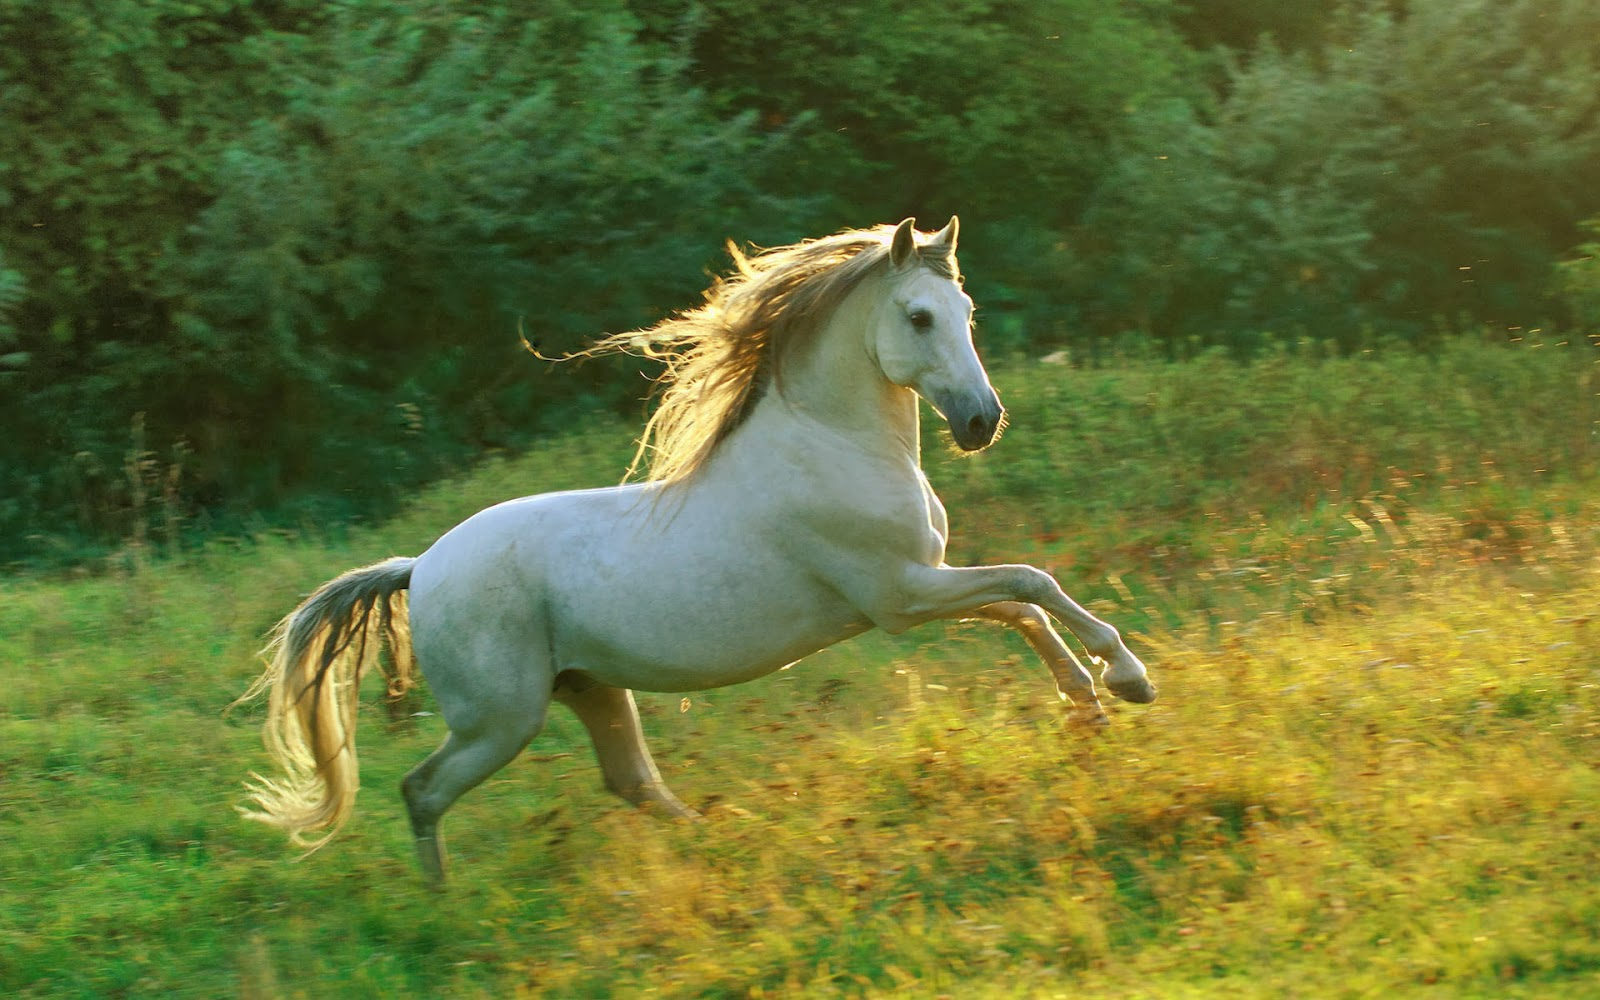 White running horses - photo#41